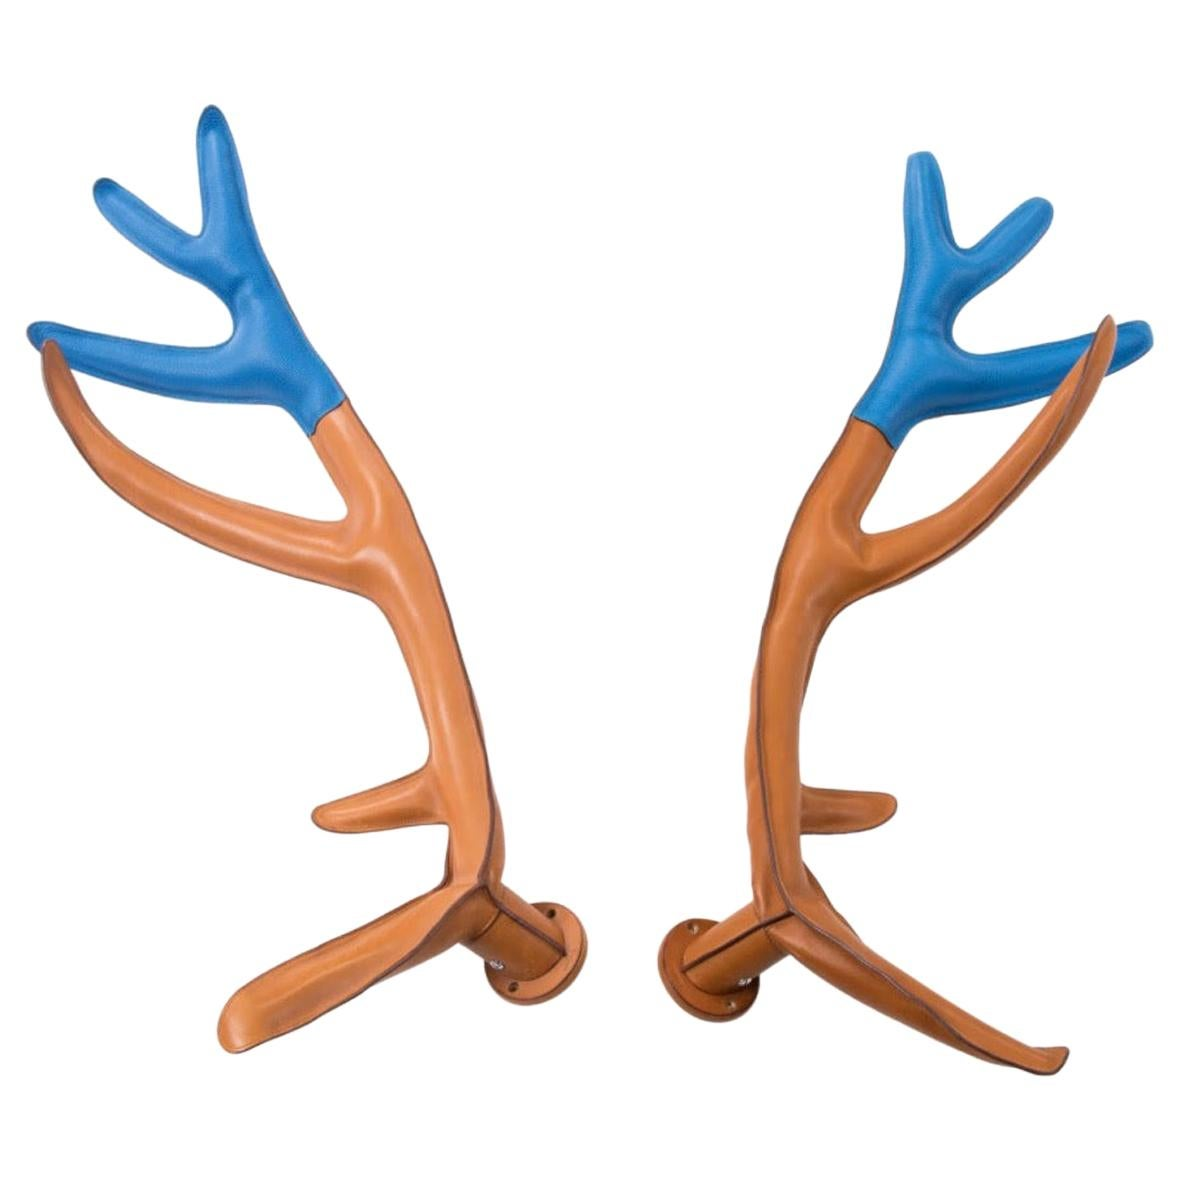 Hermes Limited Edition Cognac Blue Leather Wall Mount Decor Deer Antlers in Box